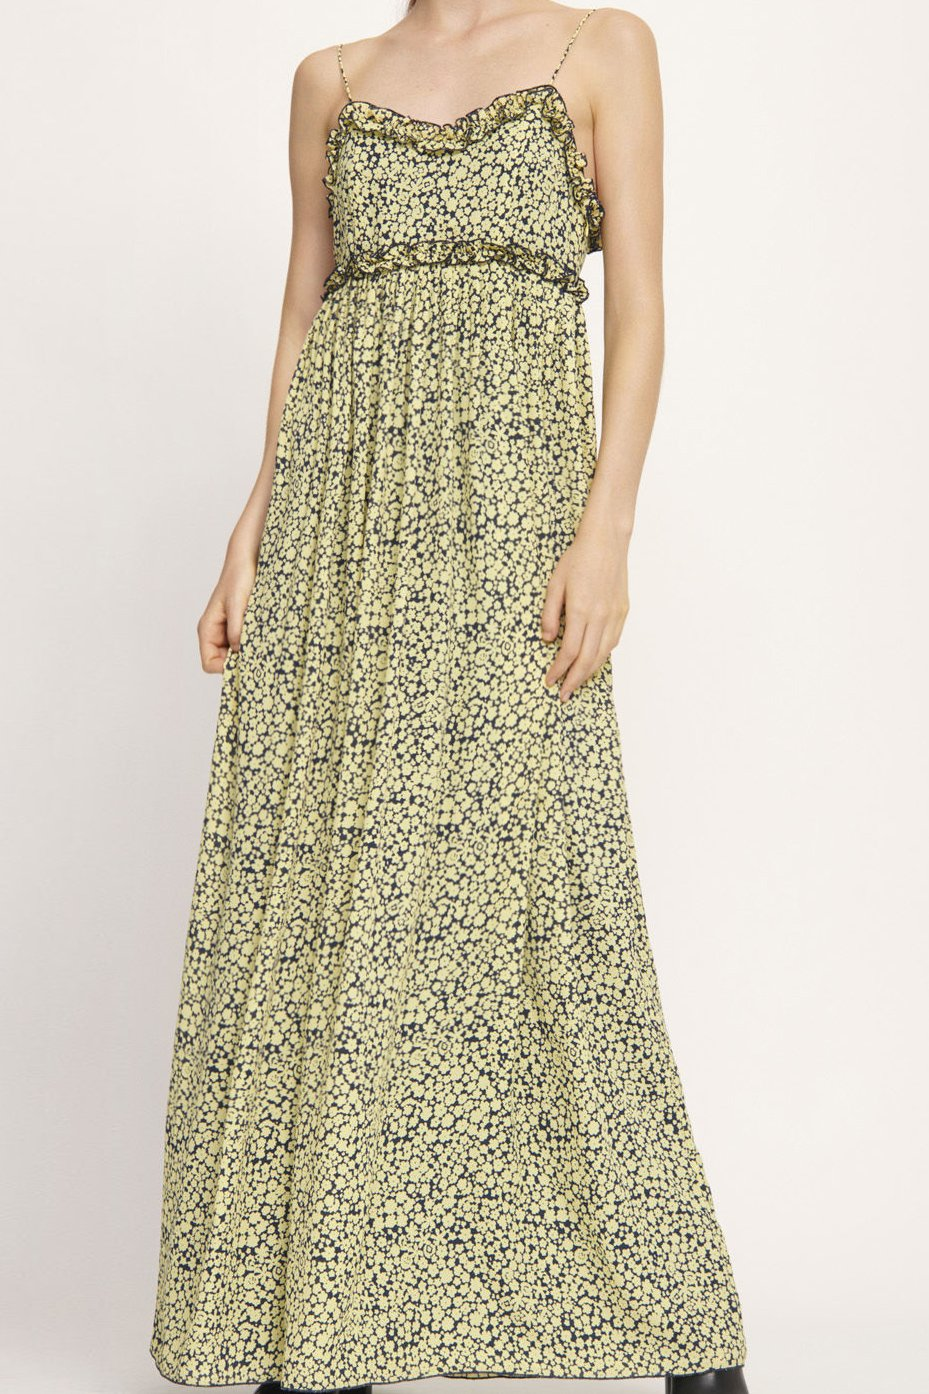 YELLOW AND NAVY FLORAL PRINT SPAGHETTI STRAP MAXI DRESS